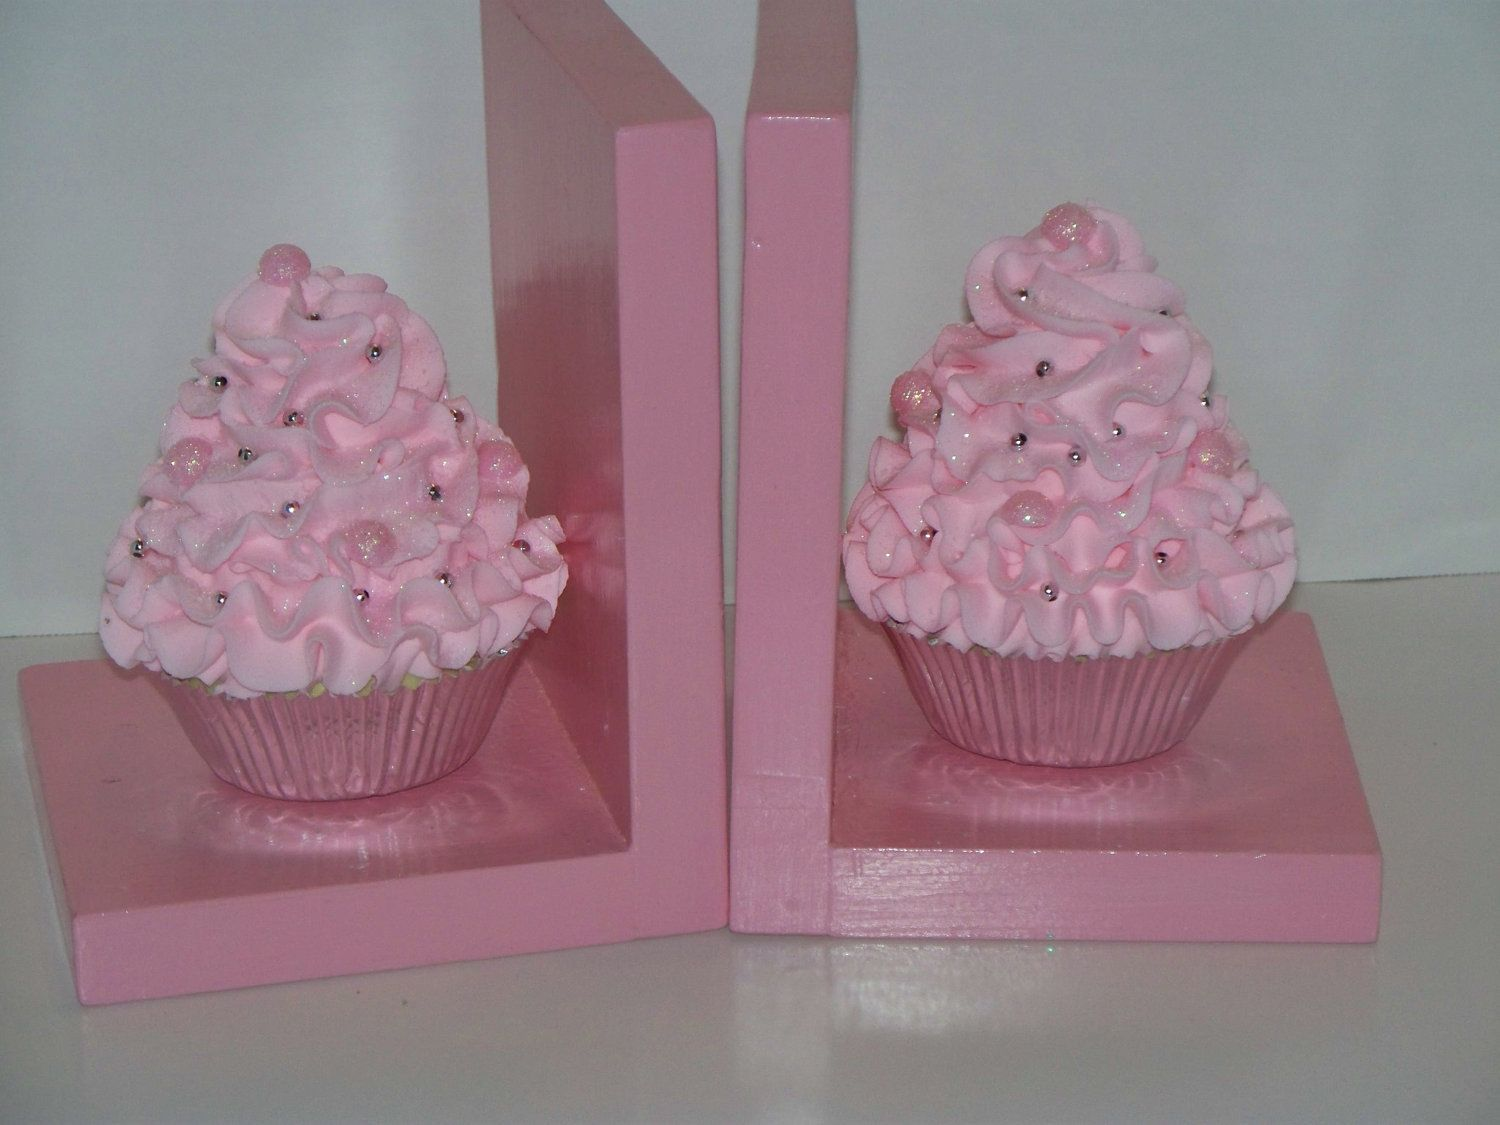 Pastel Pink Kitchen Accessories Ha Love This Standard Size Pastel Pink Fake Cupcake